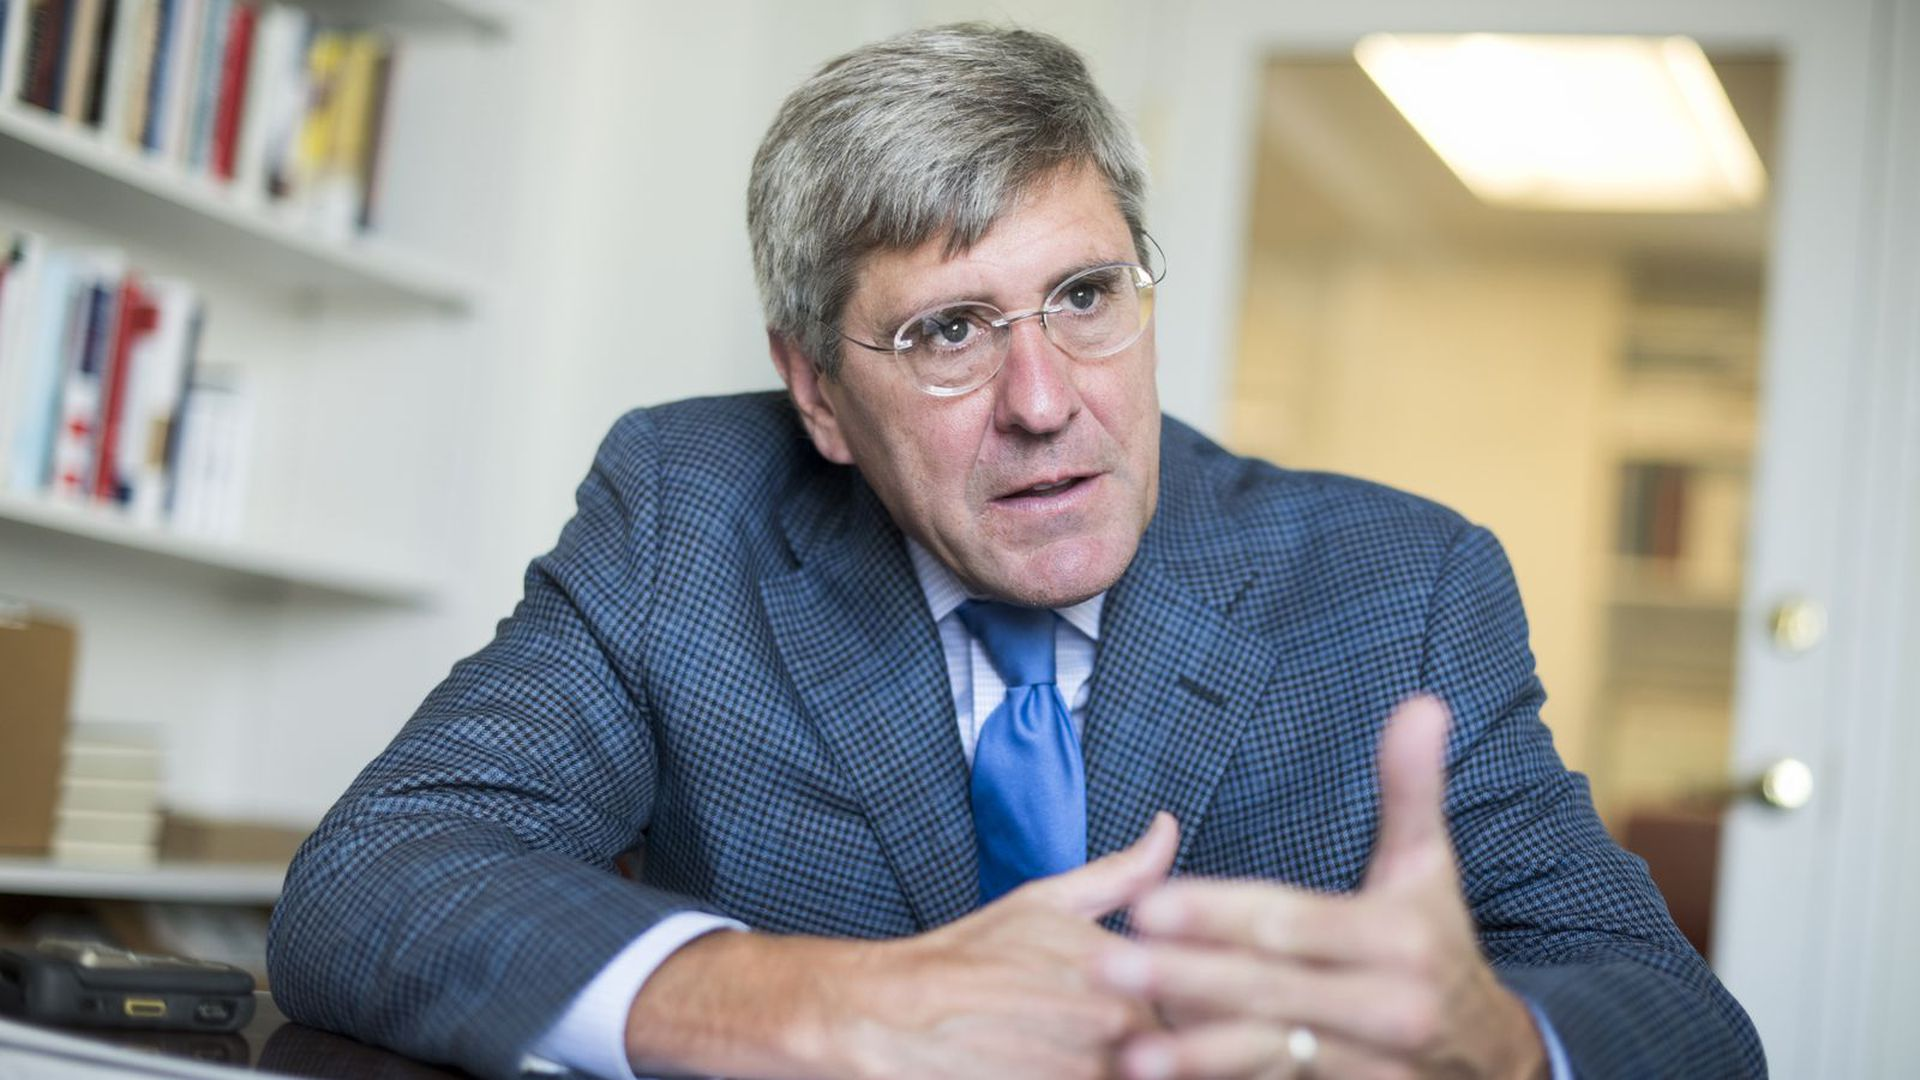 """Stephen Moore says his critics are """"pulling a Kavanaugh against me"""" after controversial writings of his from the 2000s were uncovered."""